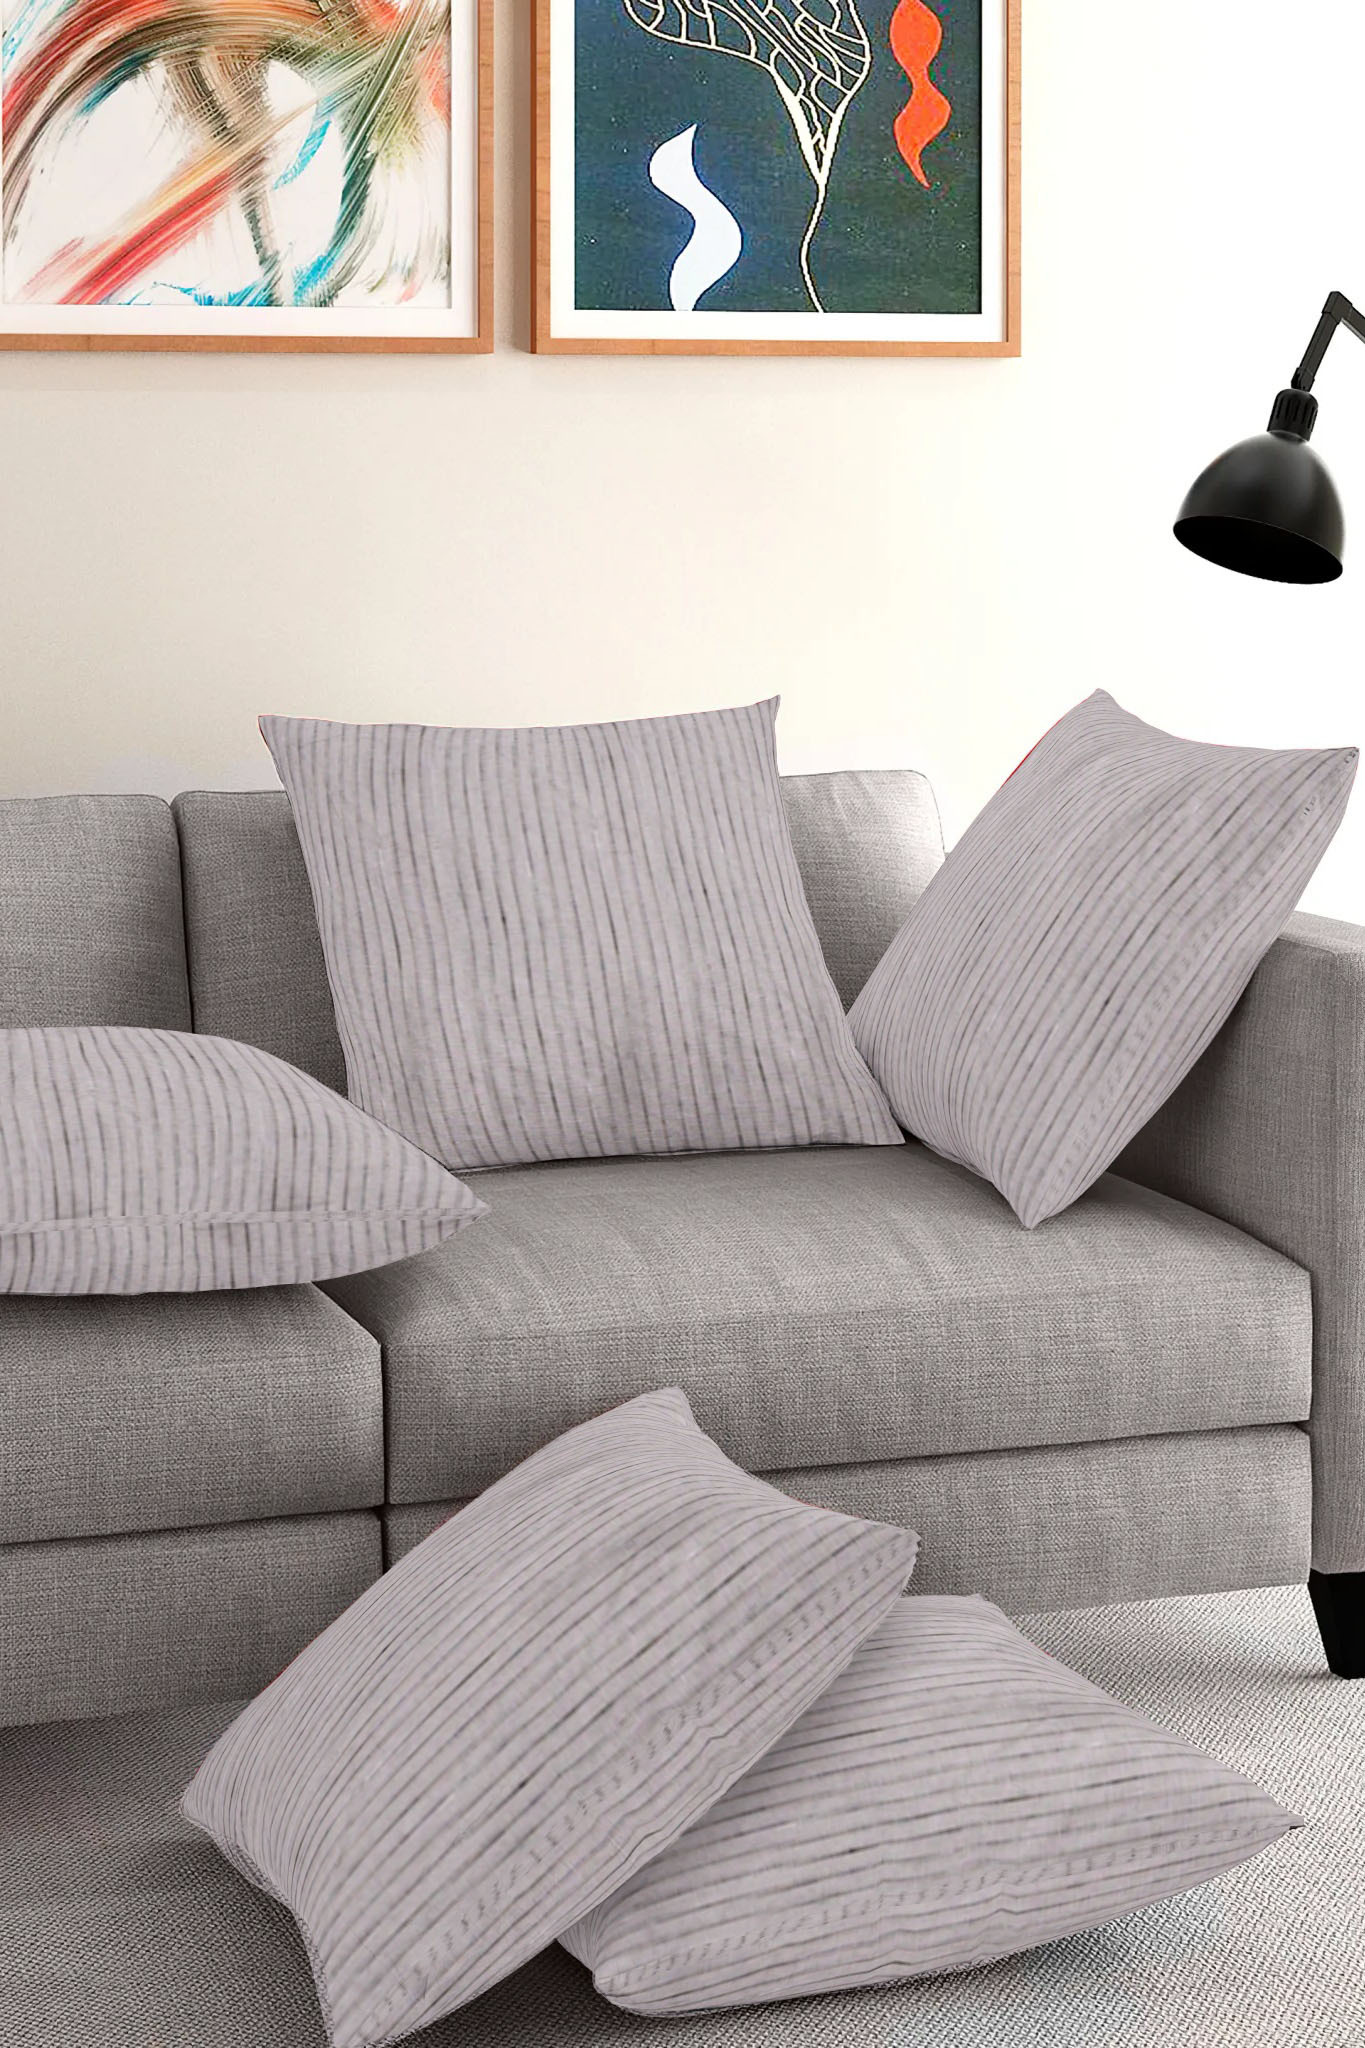 Set of 5-Gray White Cotton Cushion Cover-35400-16x16 Inches